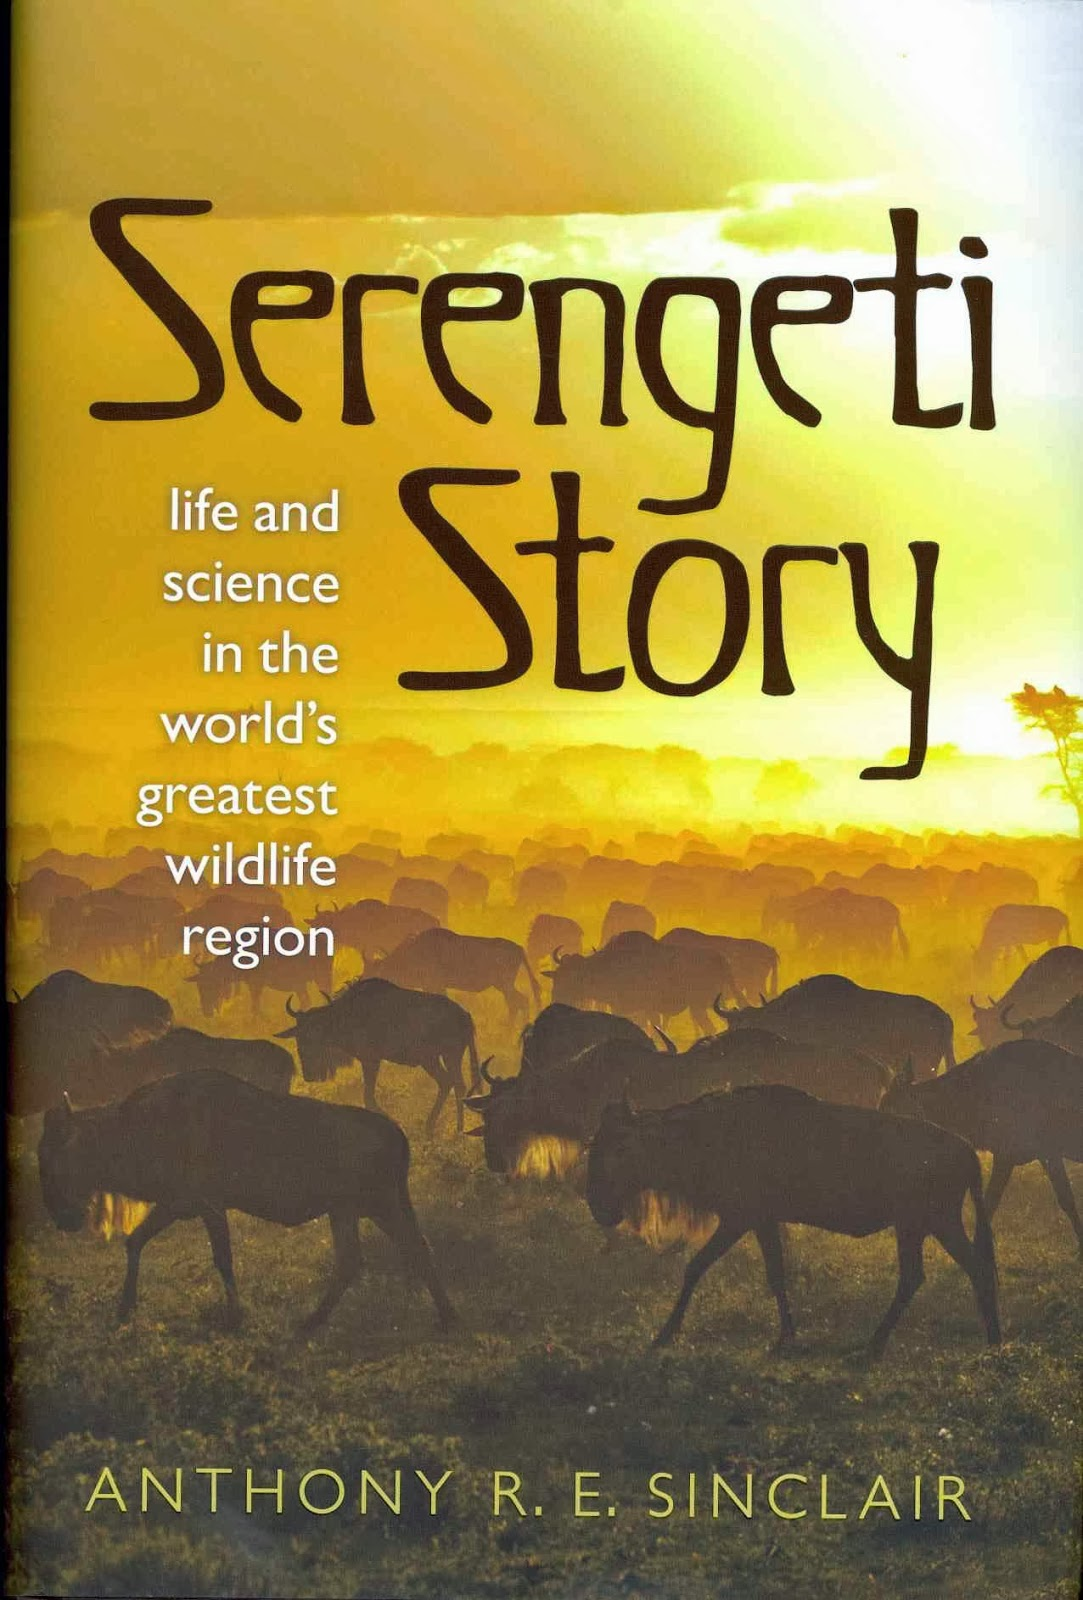 http://discover.halifaxpubliclibraries.ca/?q=title:serengeti%20story%20life%20and%20science